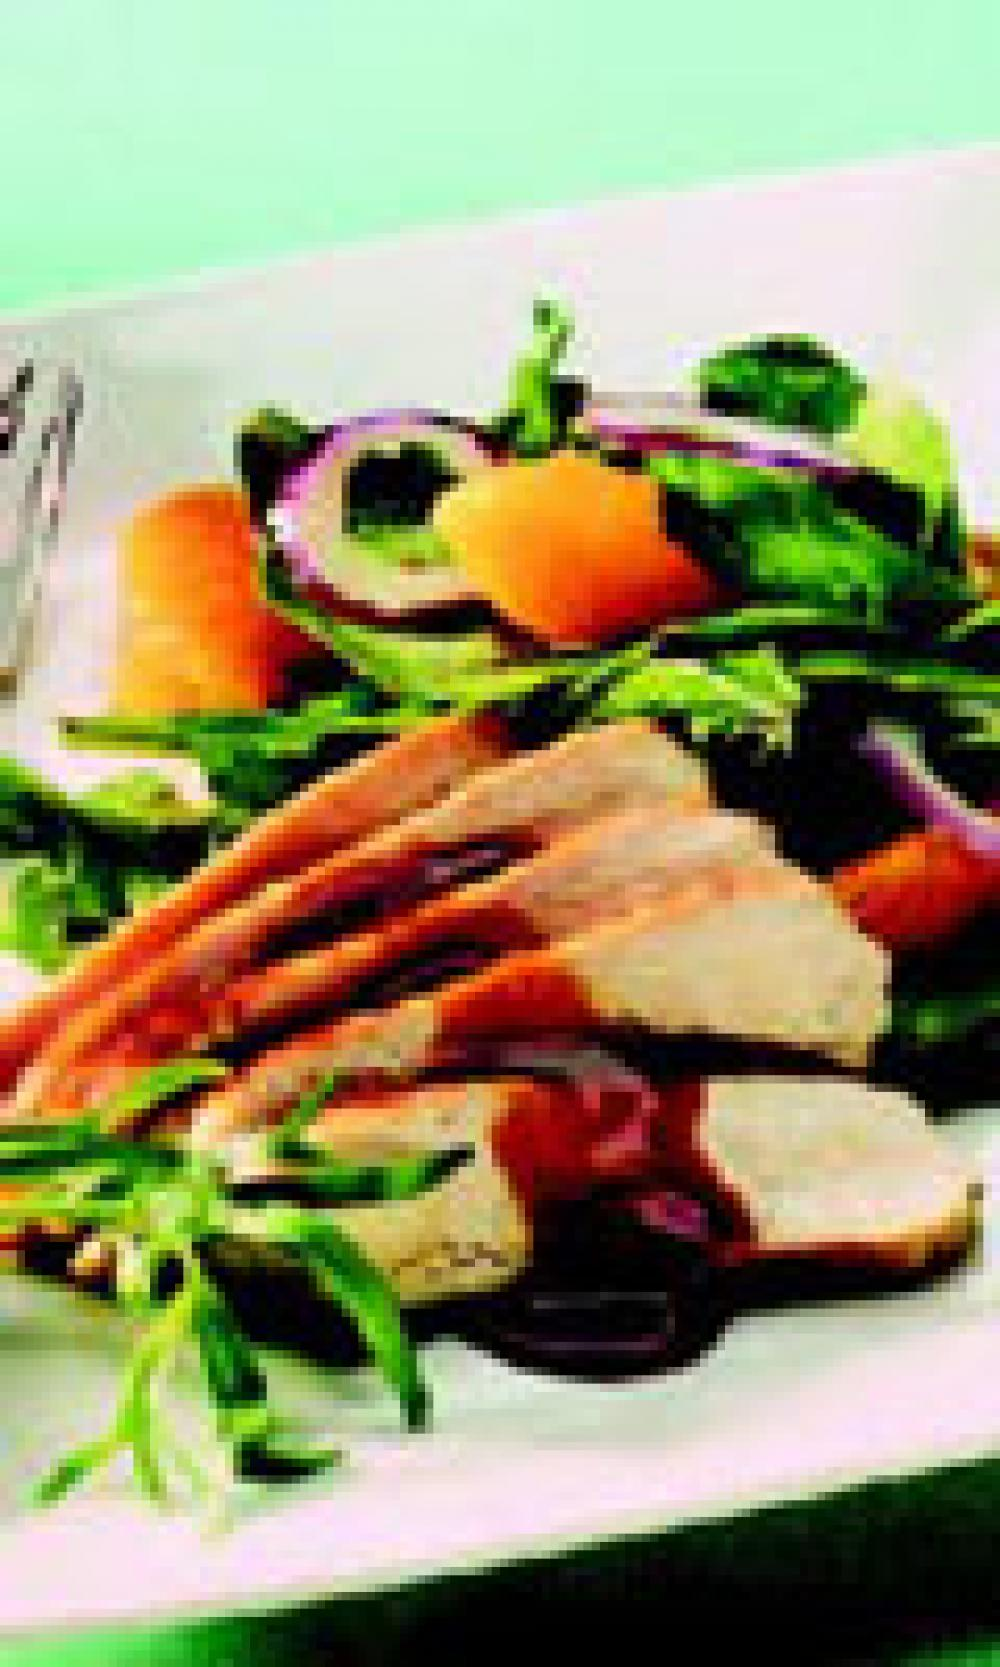 Warm Chicken Salad with Tangerine, Tarragon and Arugula